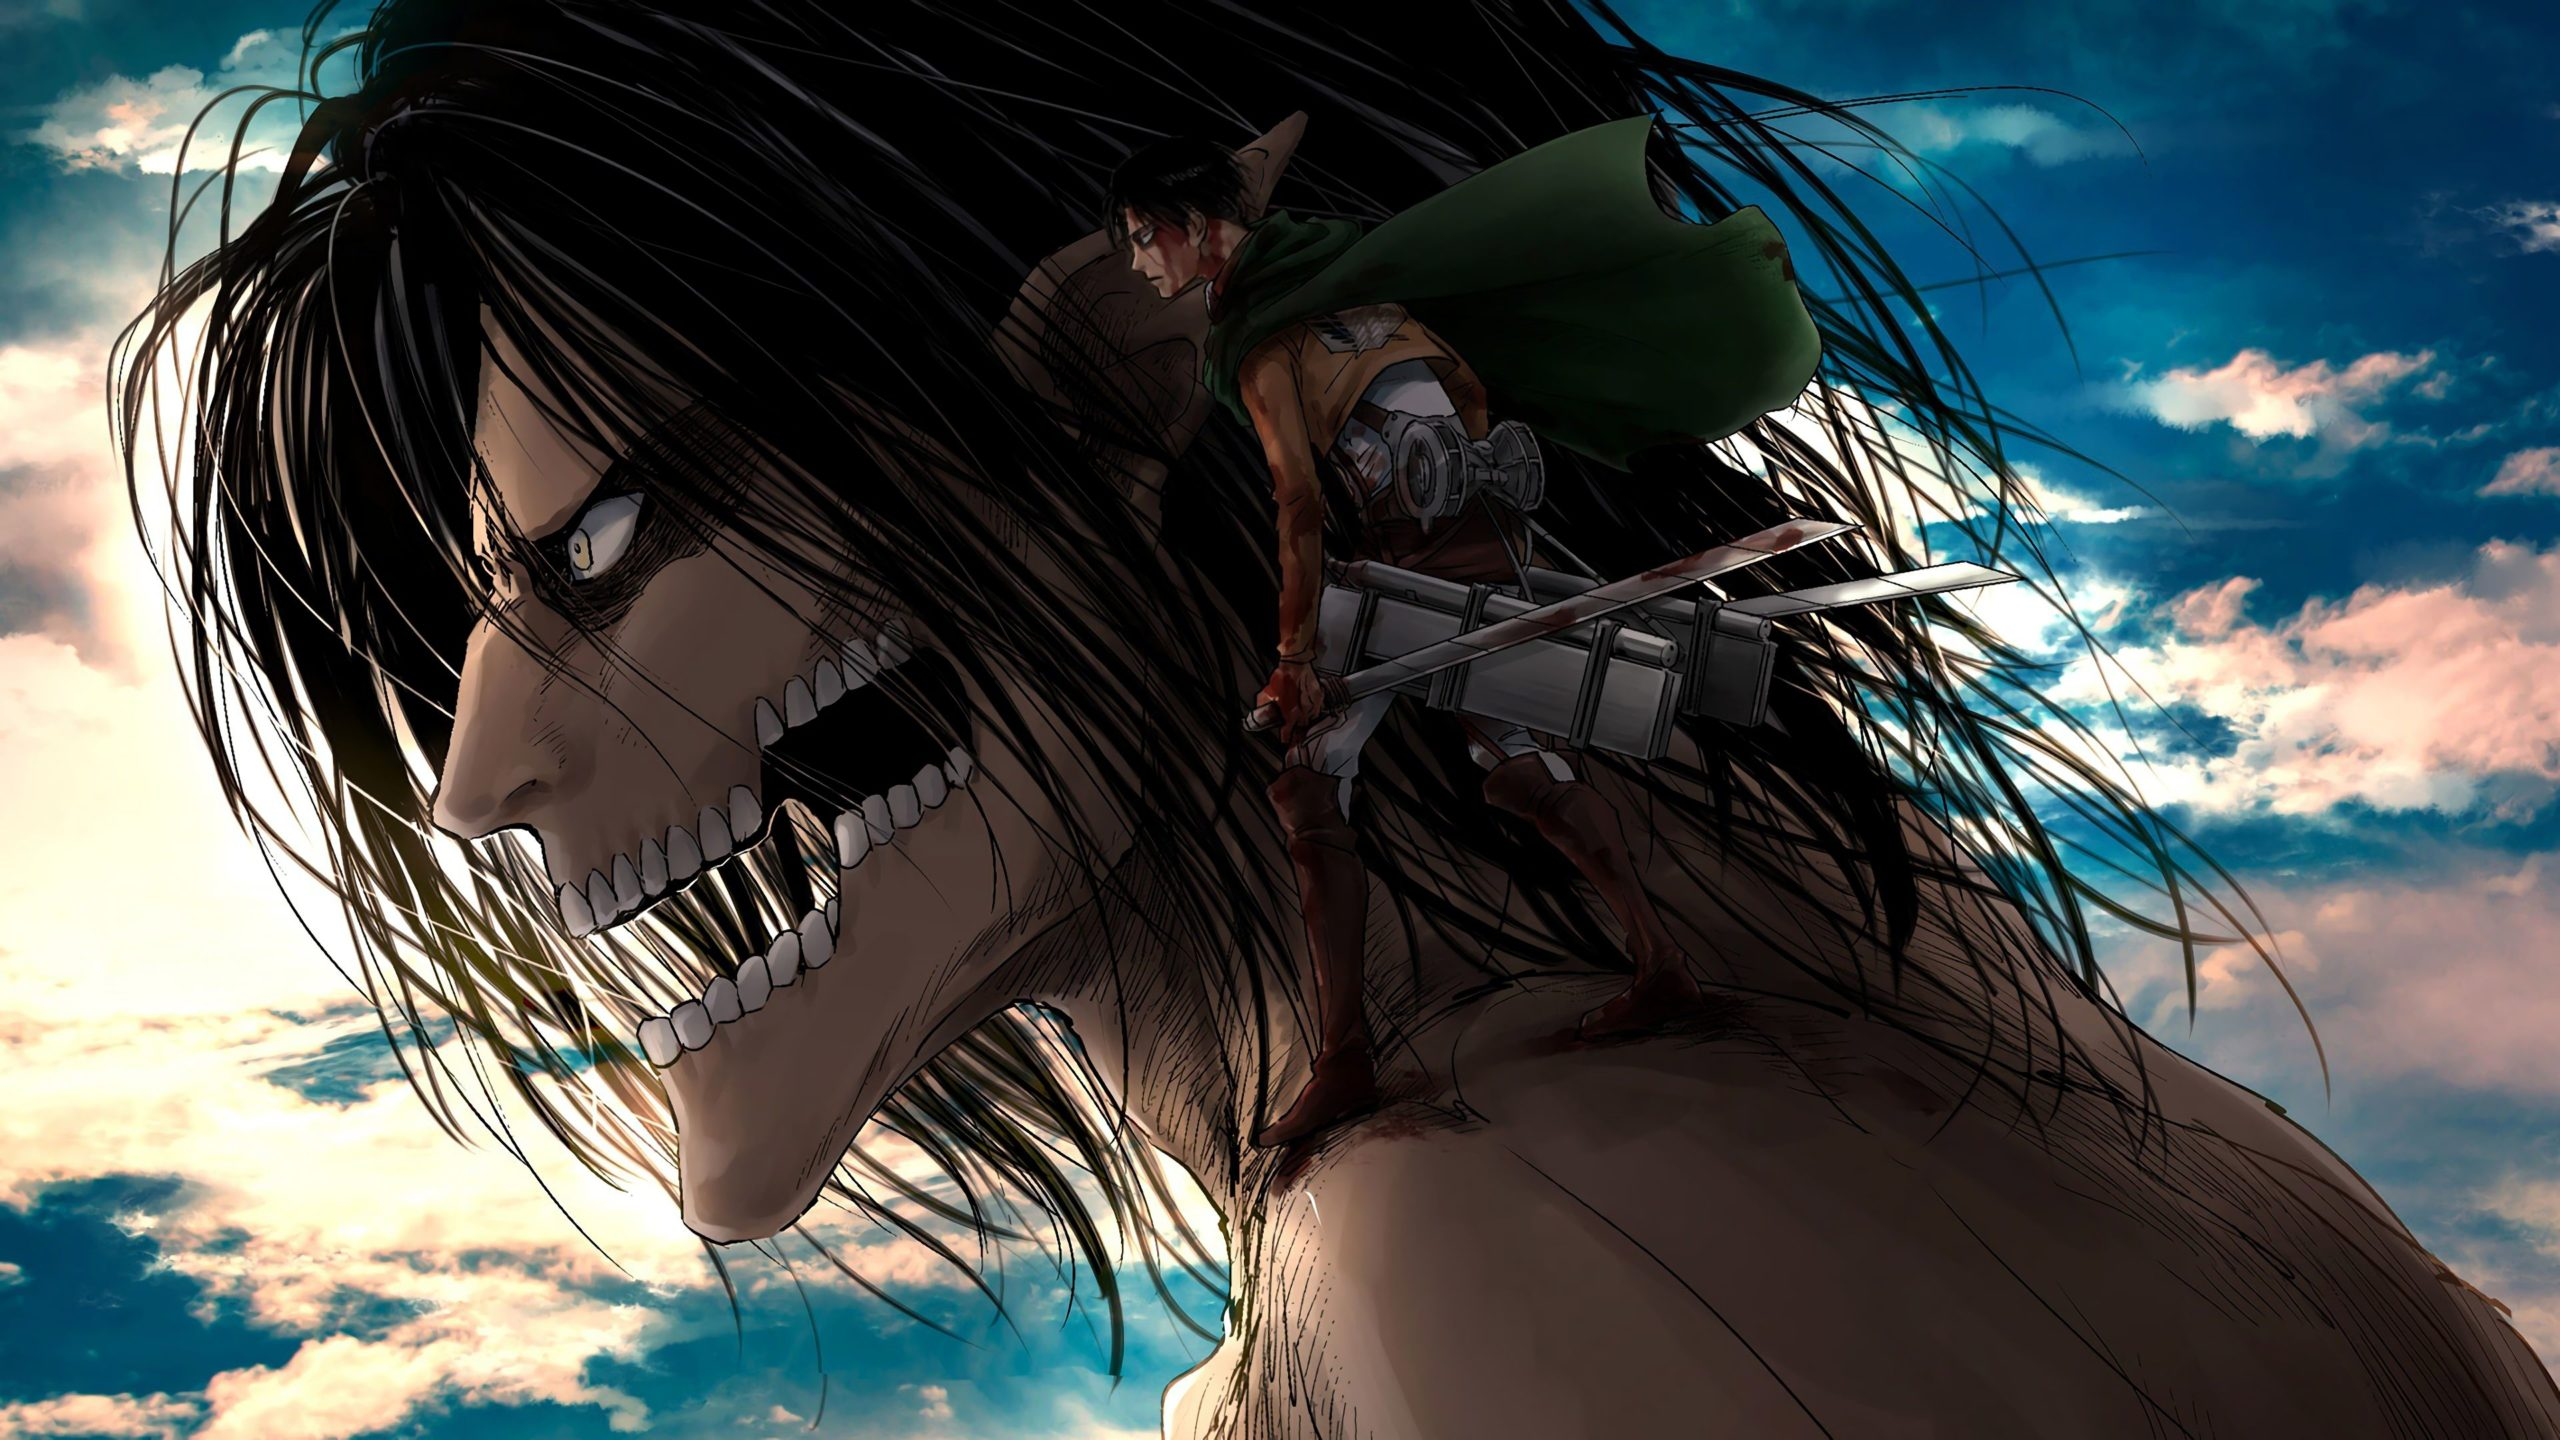 Attack on Titan Chapter 138 Spoilers, Leaks and Summary